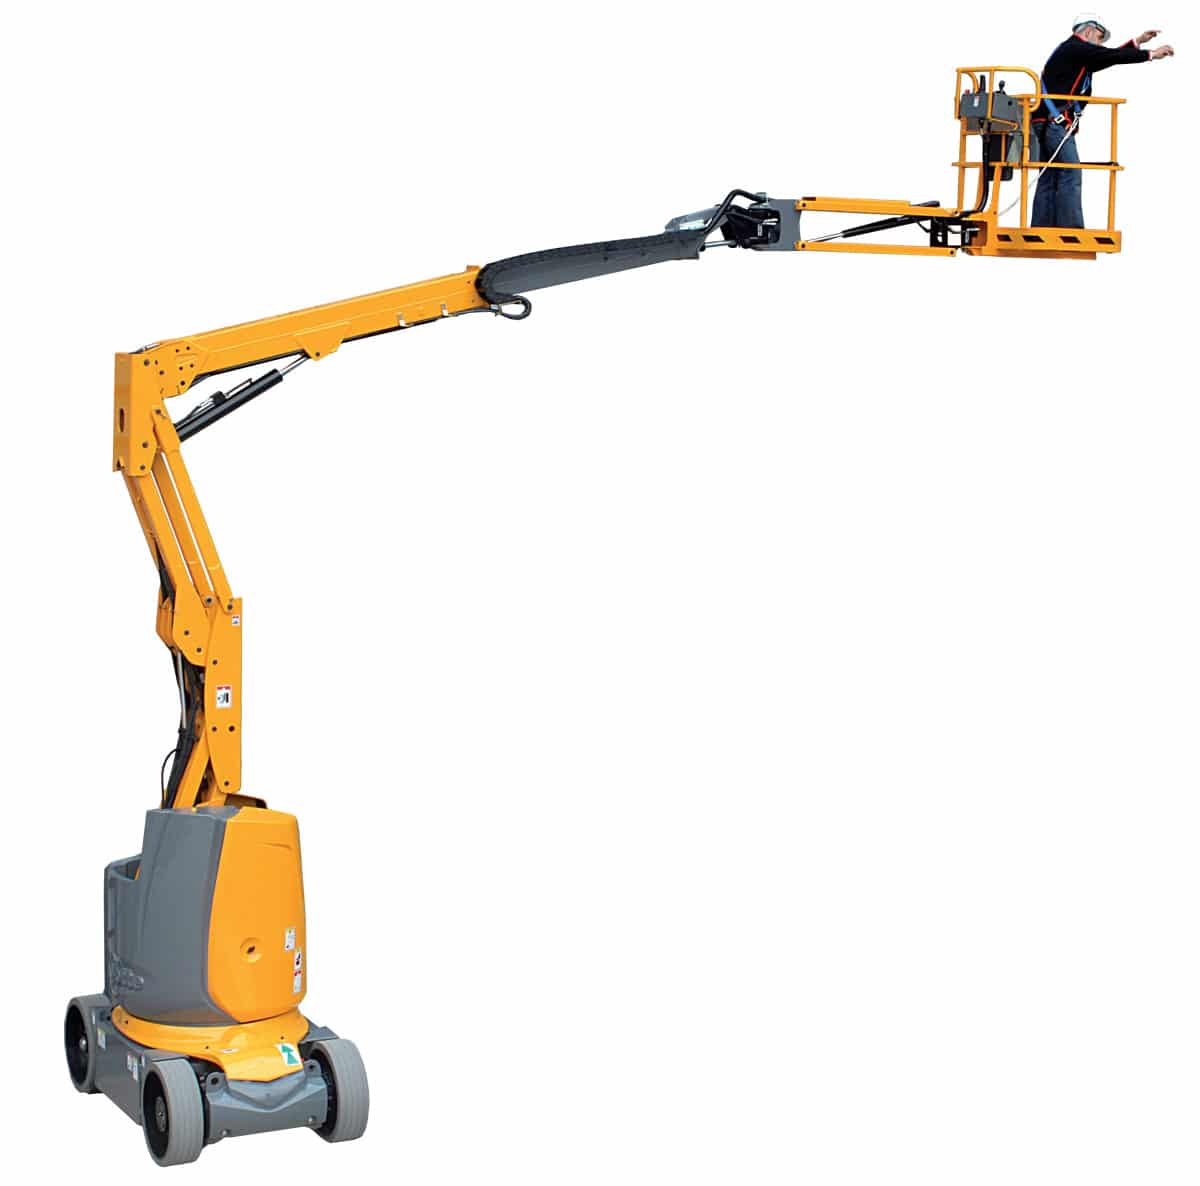 HA32 CJ Electric Articulating Boom Lift